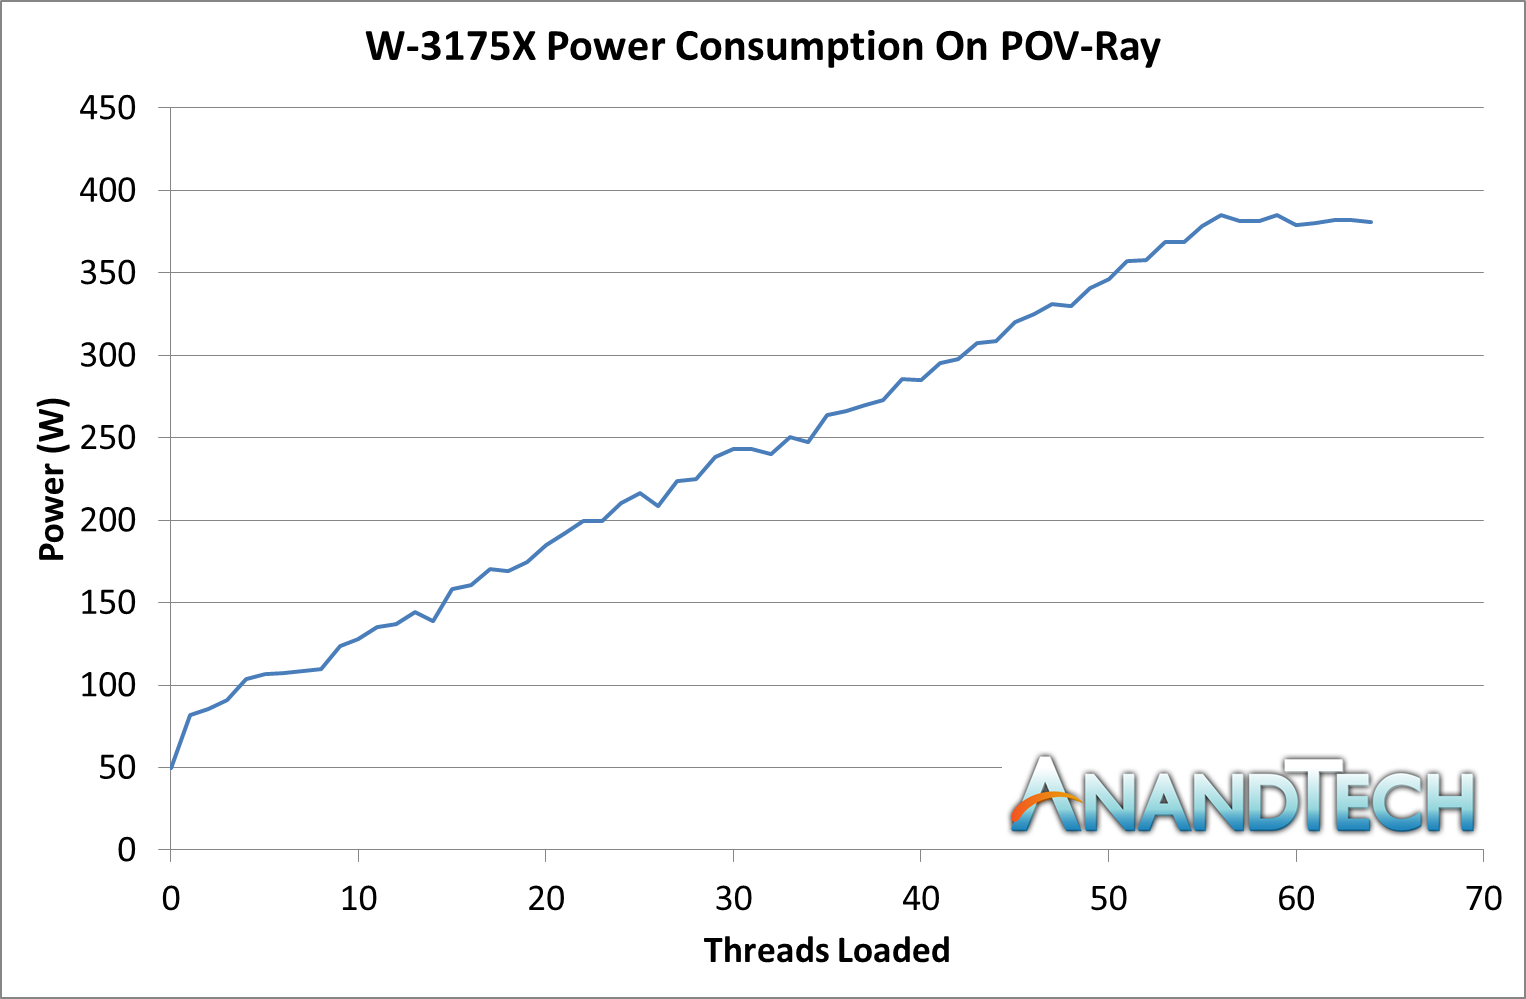 W-3175X Power Consumption and Overclocking - The Intel Xeon W-3175X